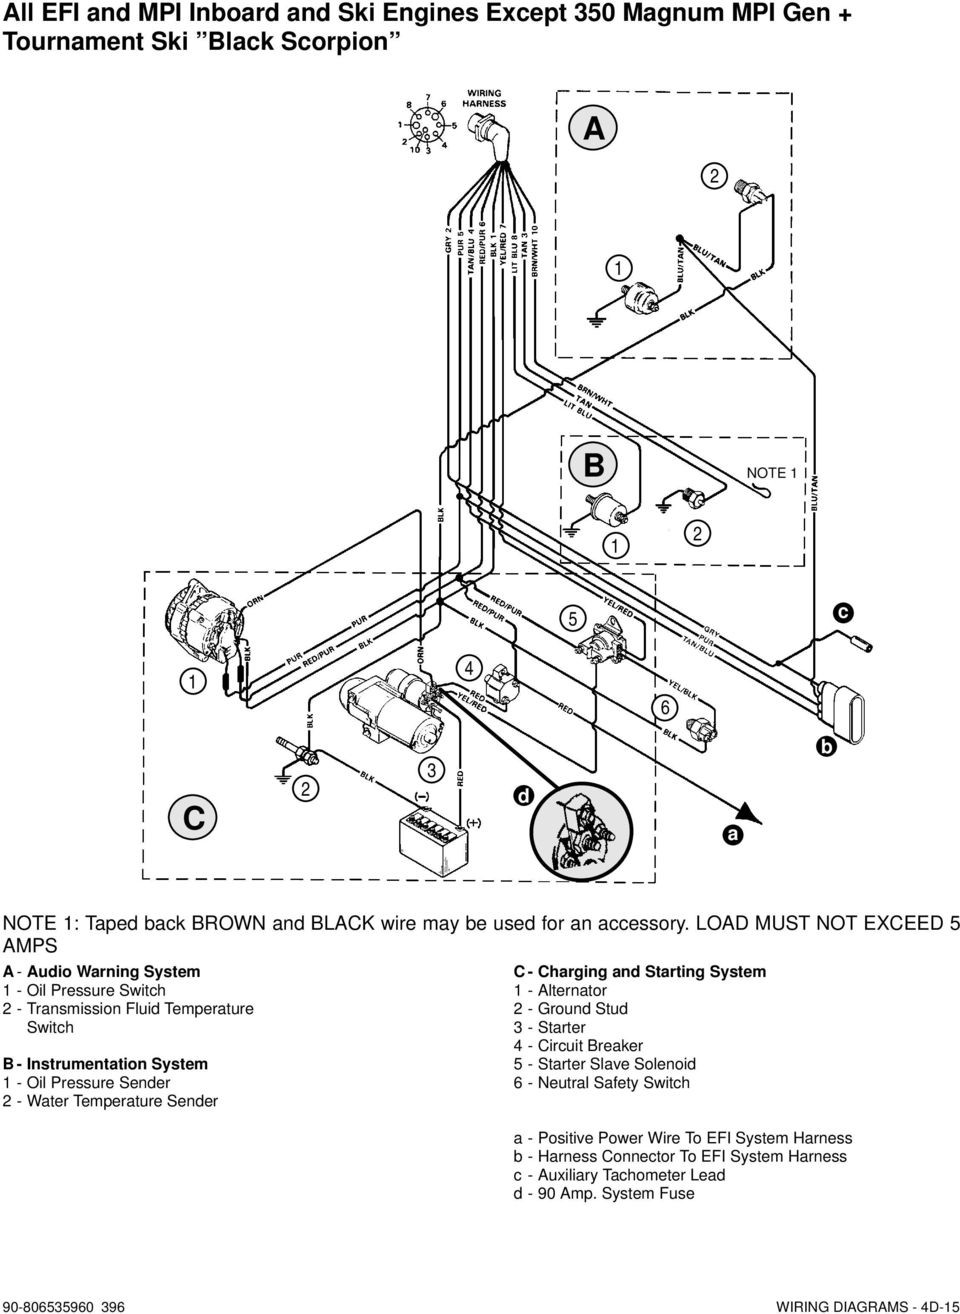 powerline alternator wiring diagram Collection OD MUST NOT EXEED MPS udio Warning System Oil Pressure